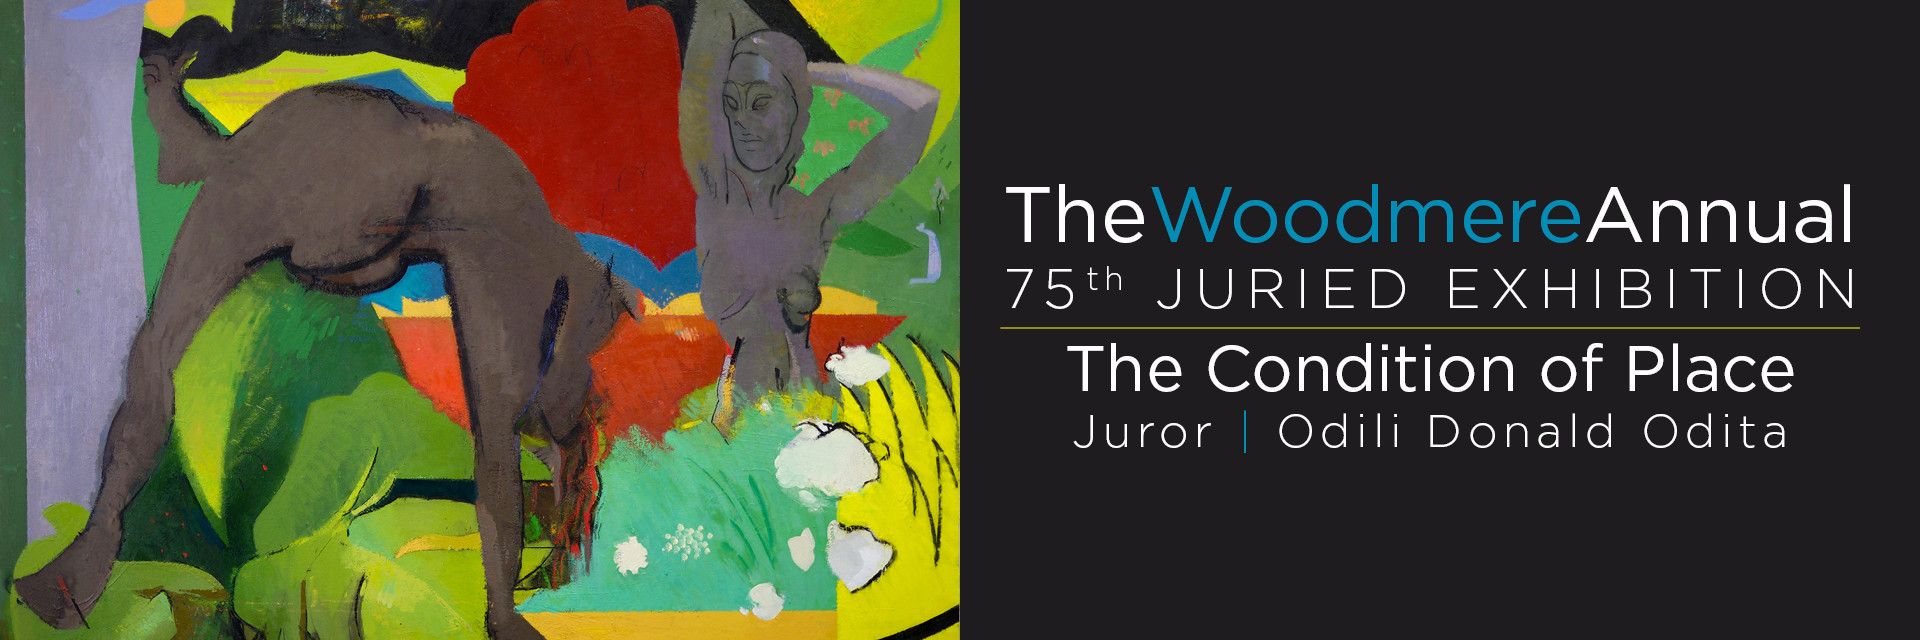 The Woodmere Annual: 75th Juried Exhibition - The Condition ...